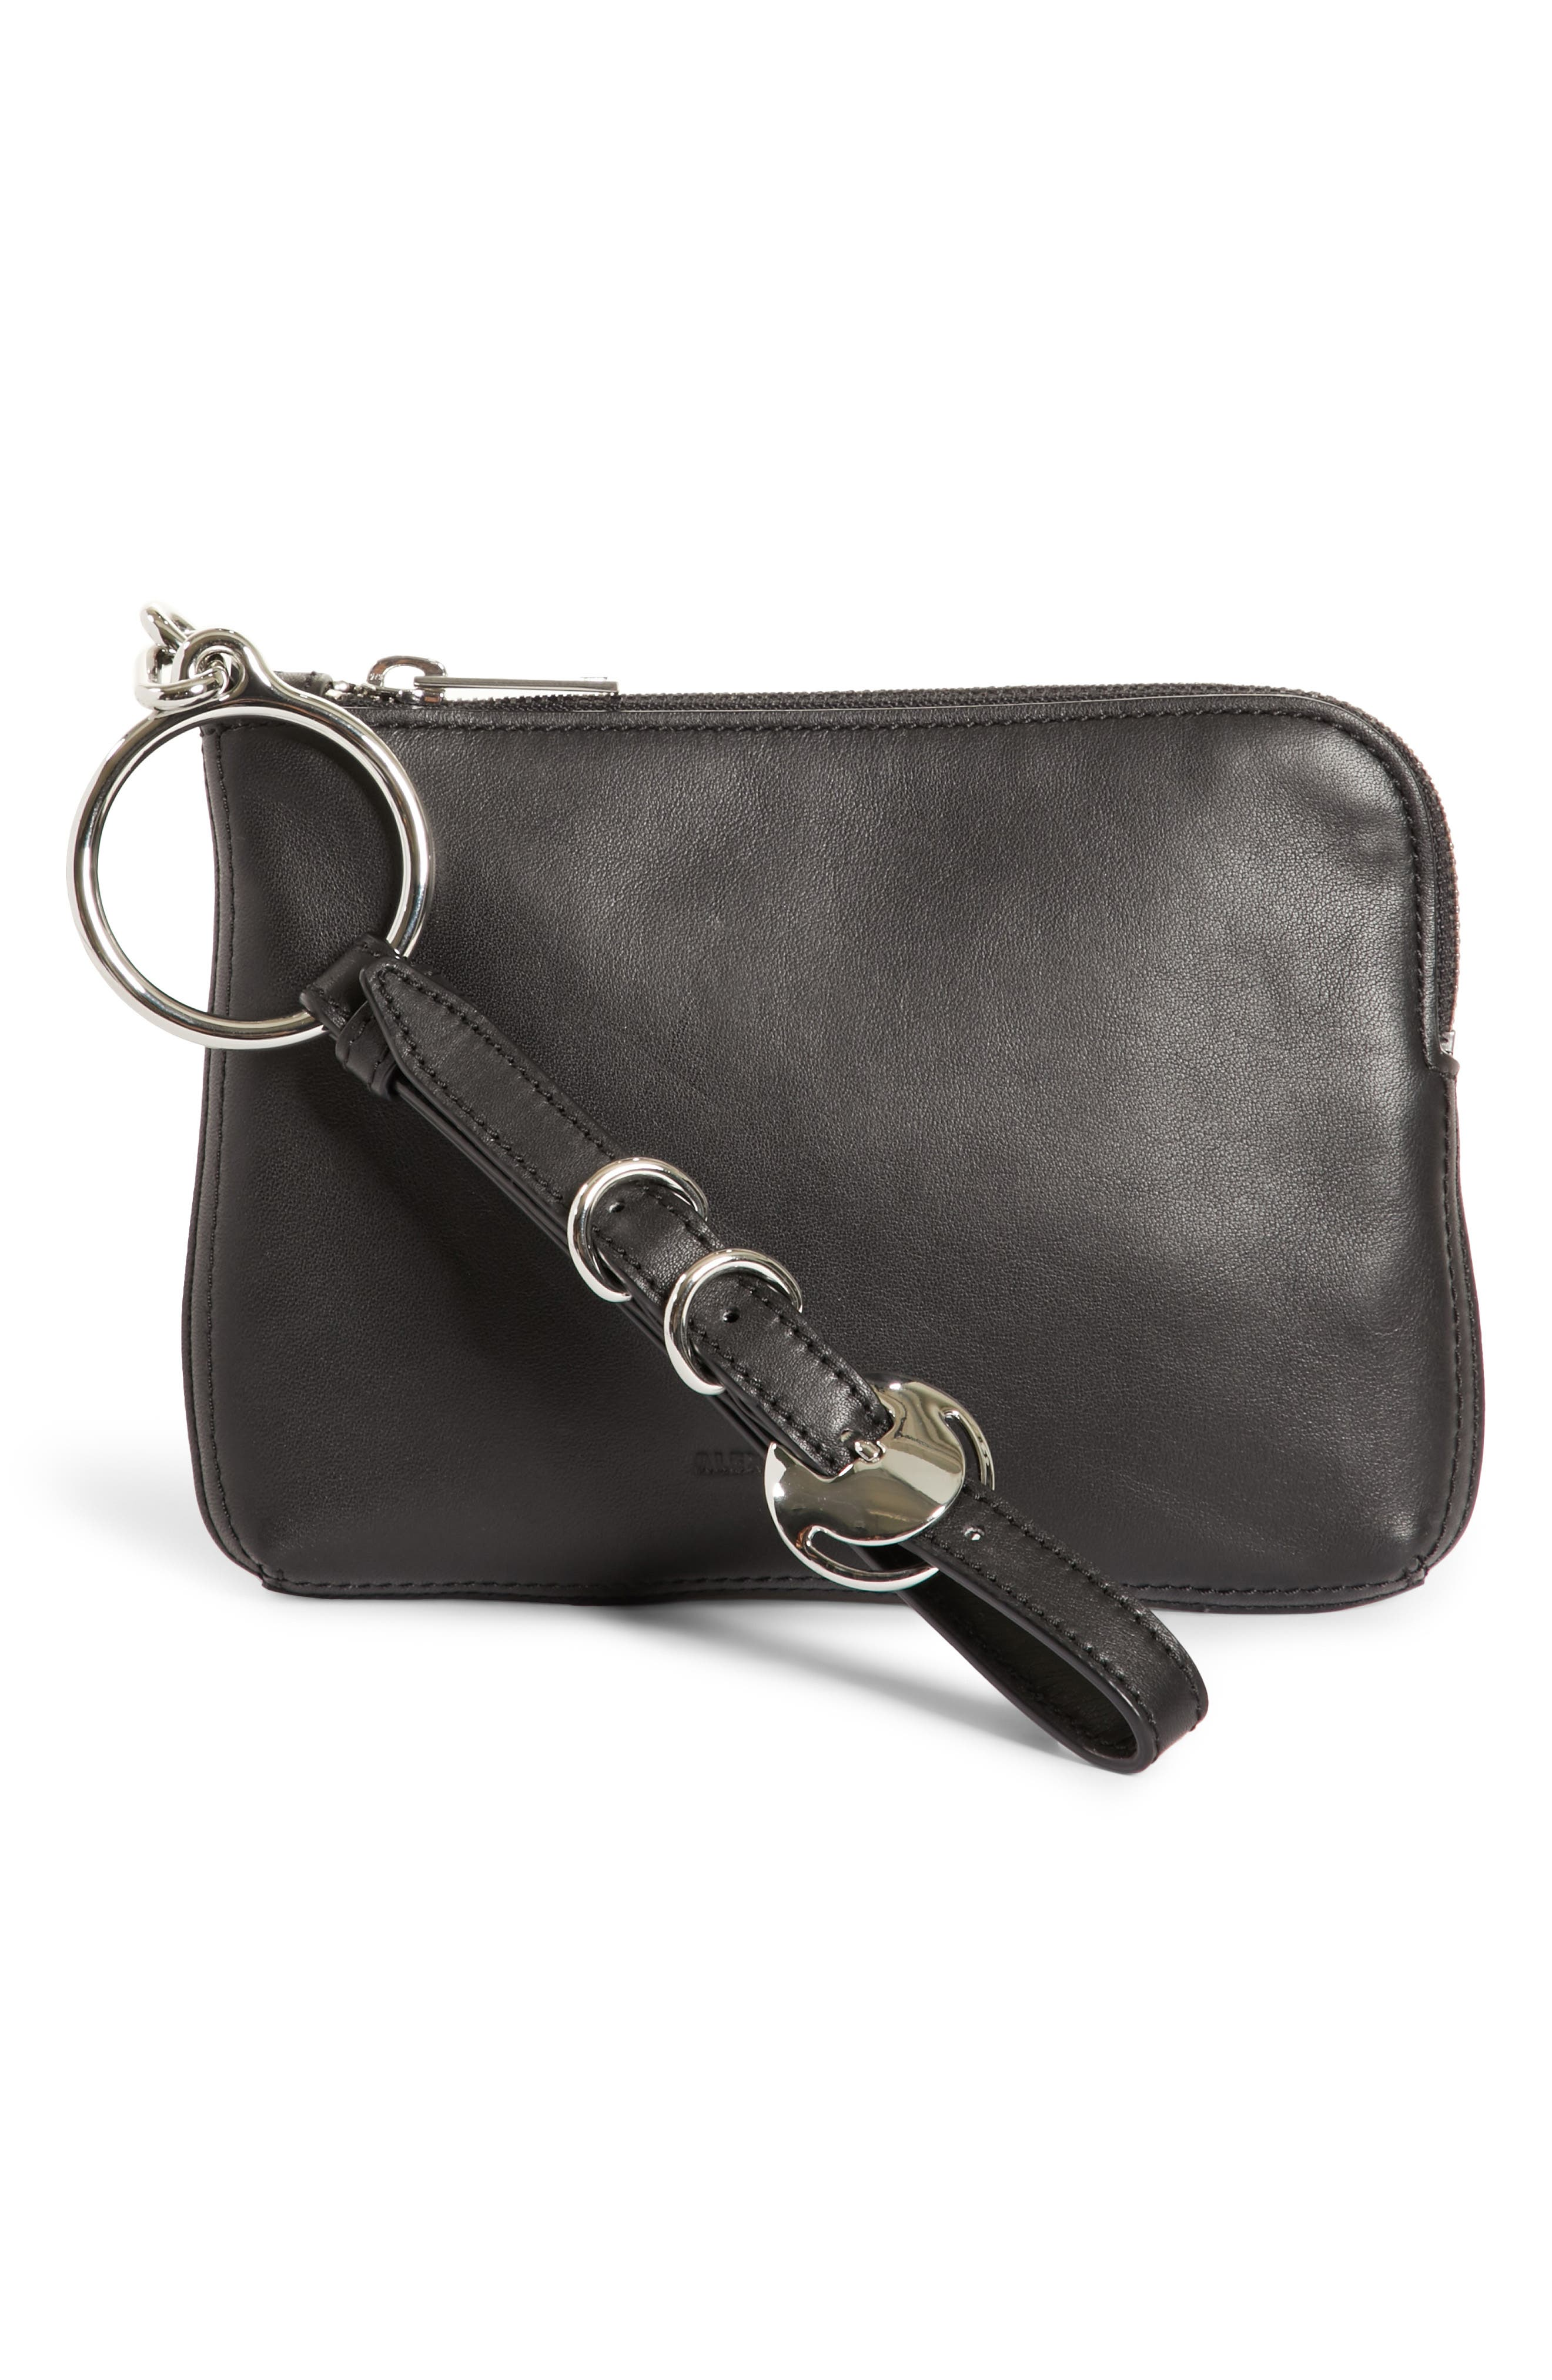 Main Image - Alexander Wang Small Ace Nappa Leather Wristlet